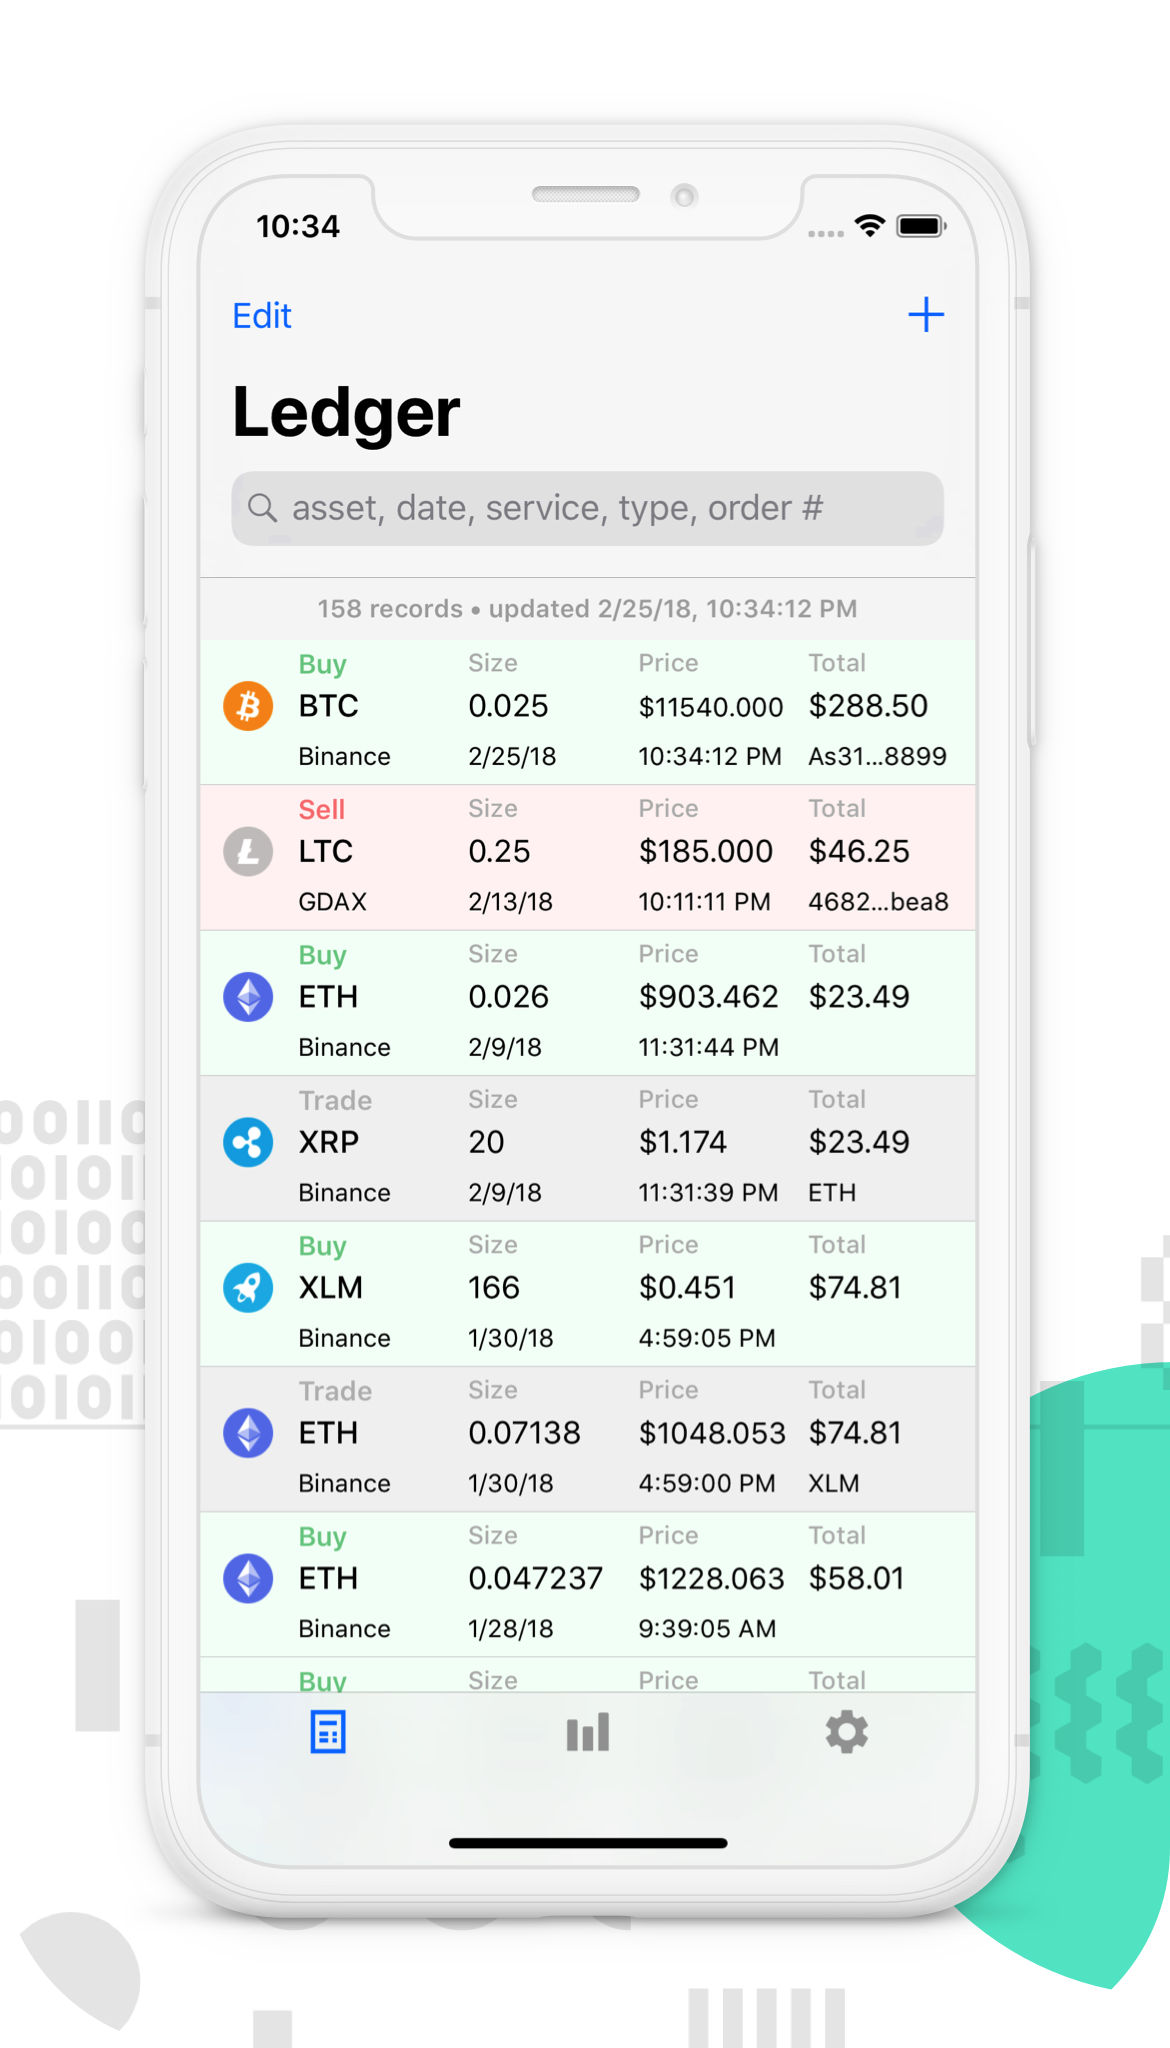 Ledger Manager iOS